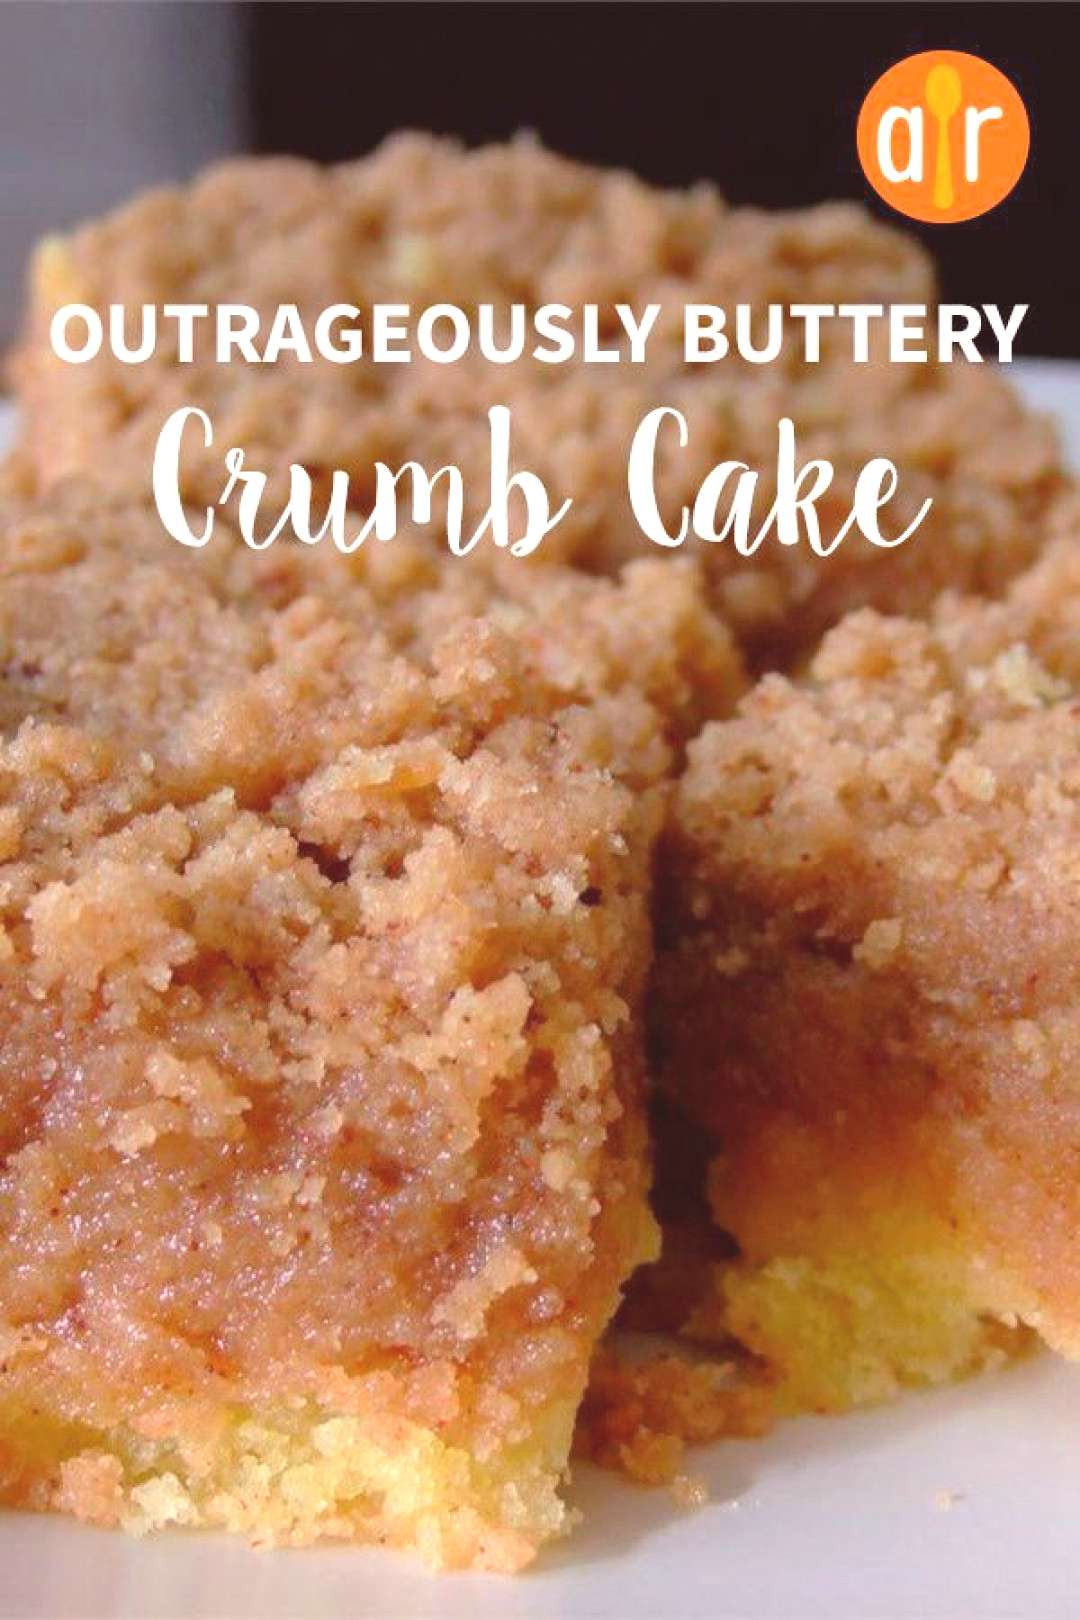 Outrageously Buttery Crumb Cake |